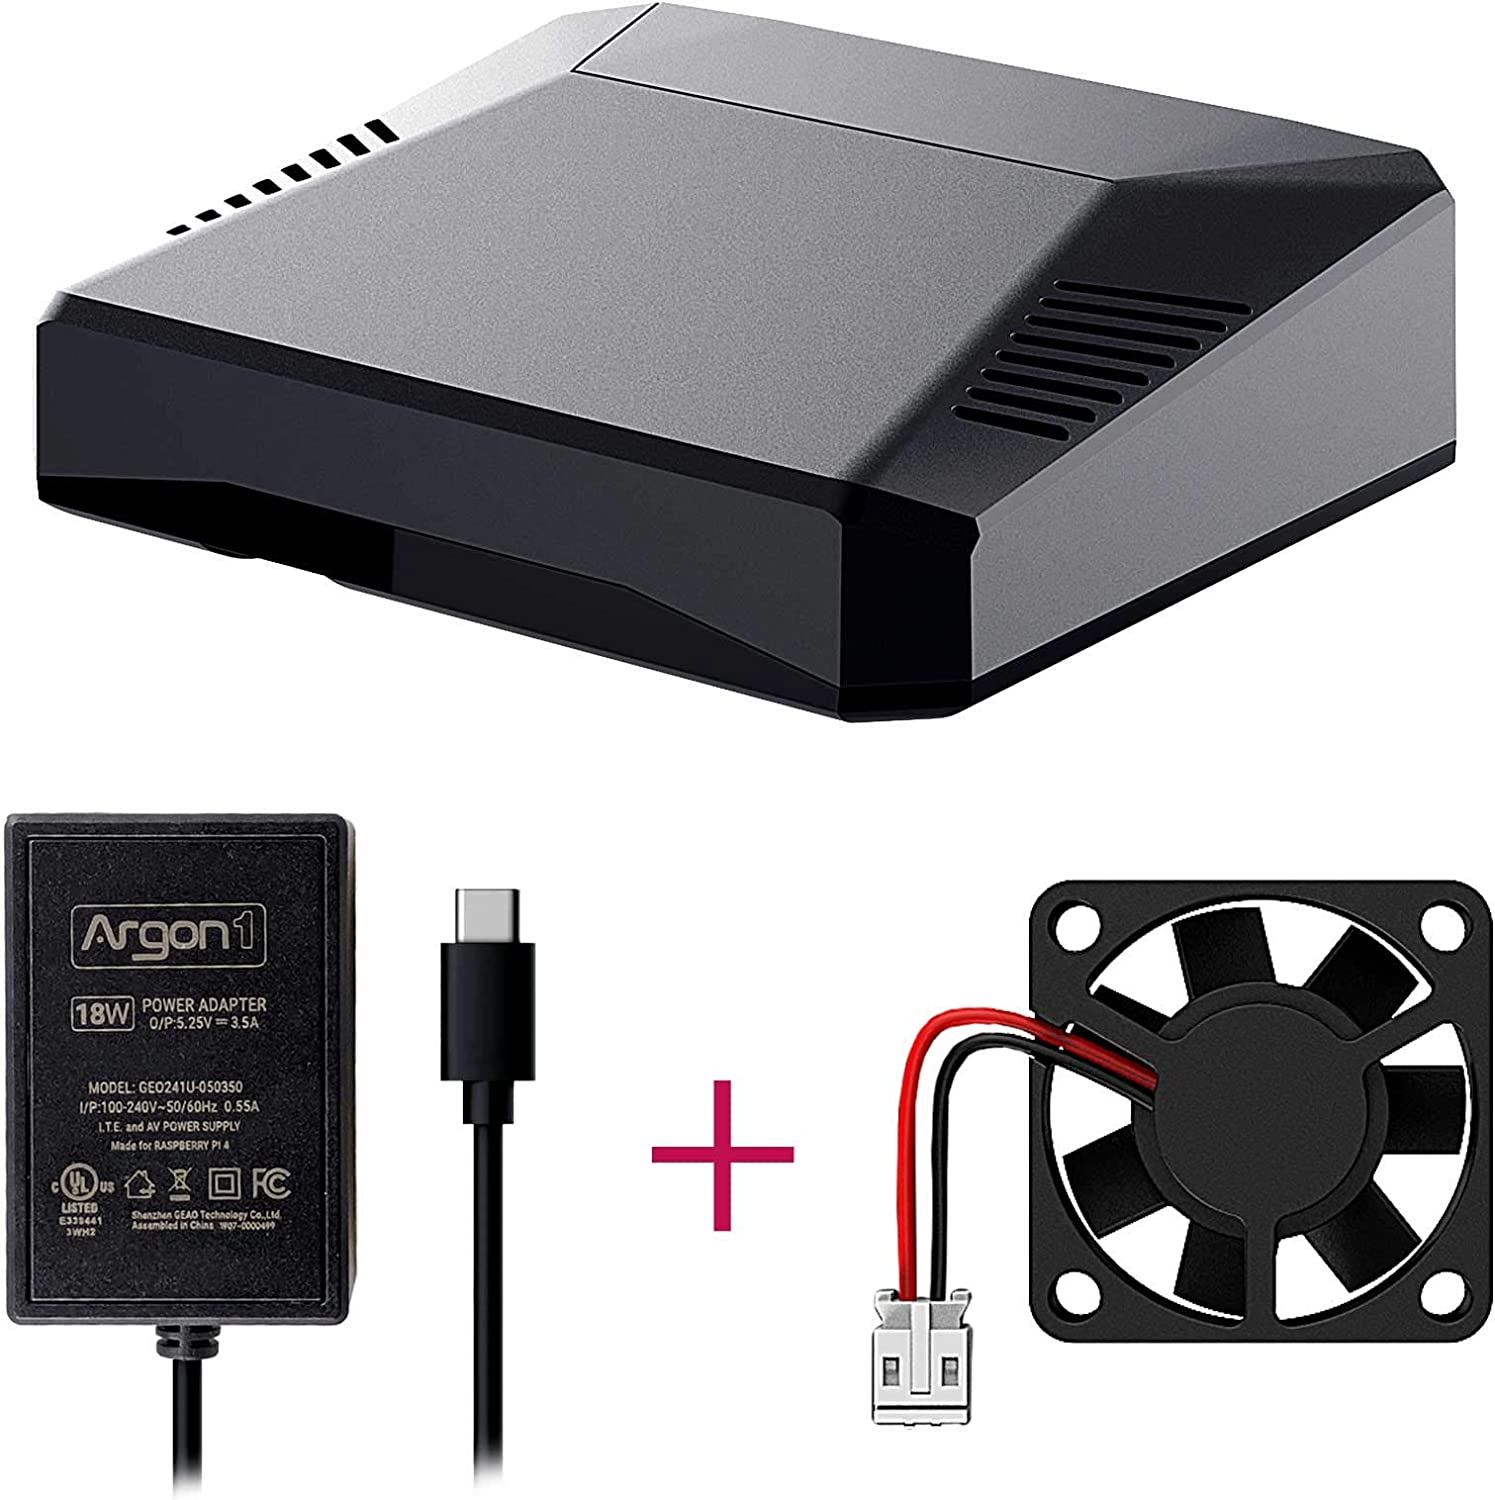 Argon One Raspberry Pi 4 Case with Cooling Fan | Includes 5.25V/3.5A Power Supply | Aluminum Heatsink | Power Button | Supports Retro Gaming, Movies, and Music | for Raspberry Pi 4 Model B